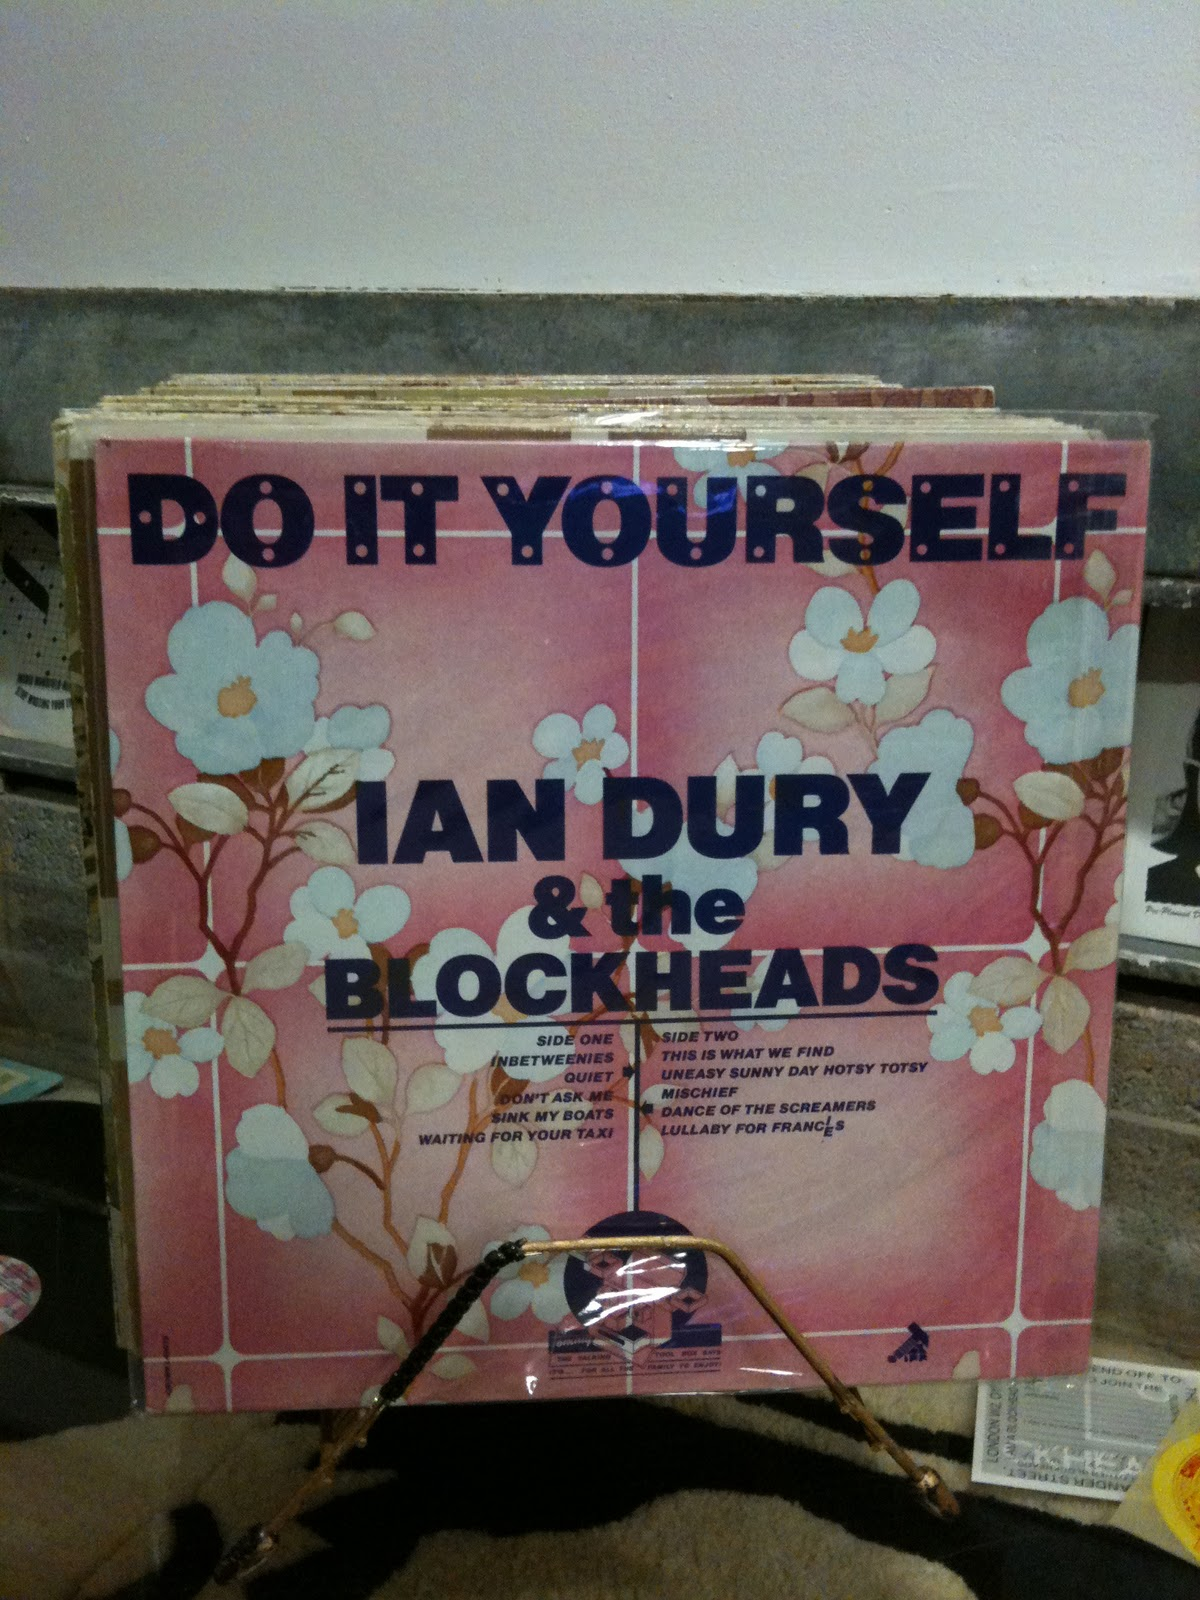 Blographic design barney bubbles designer at stiff records in the punk era he produced what are some of his most memorable covers in particular the ian dury album do it yourself solutioingenieria Image collections